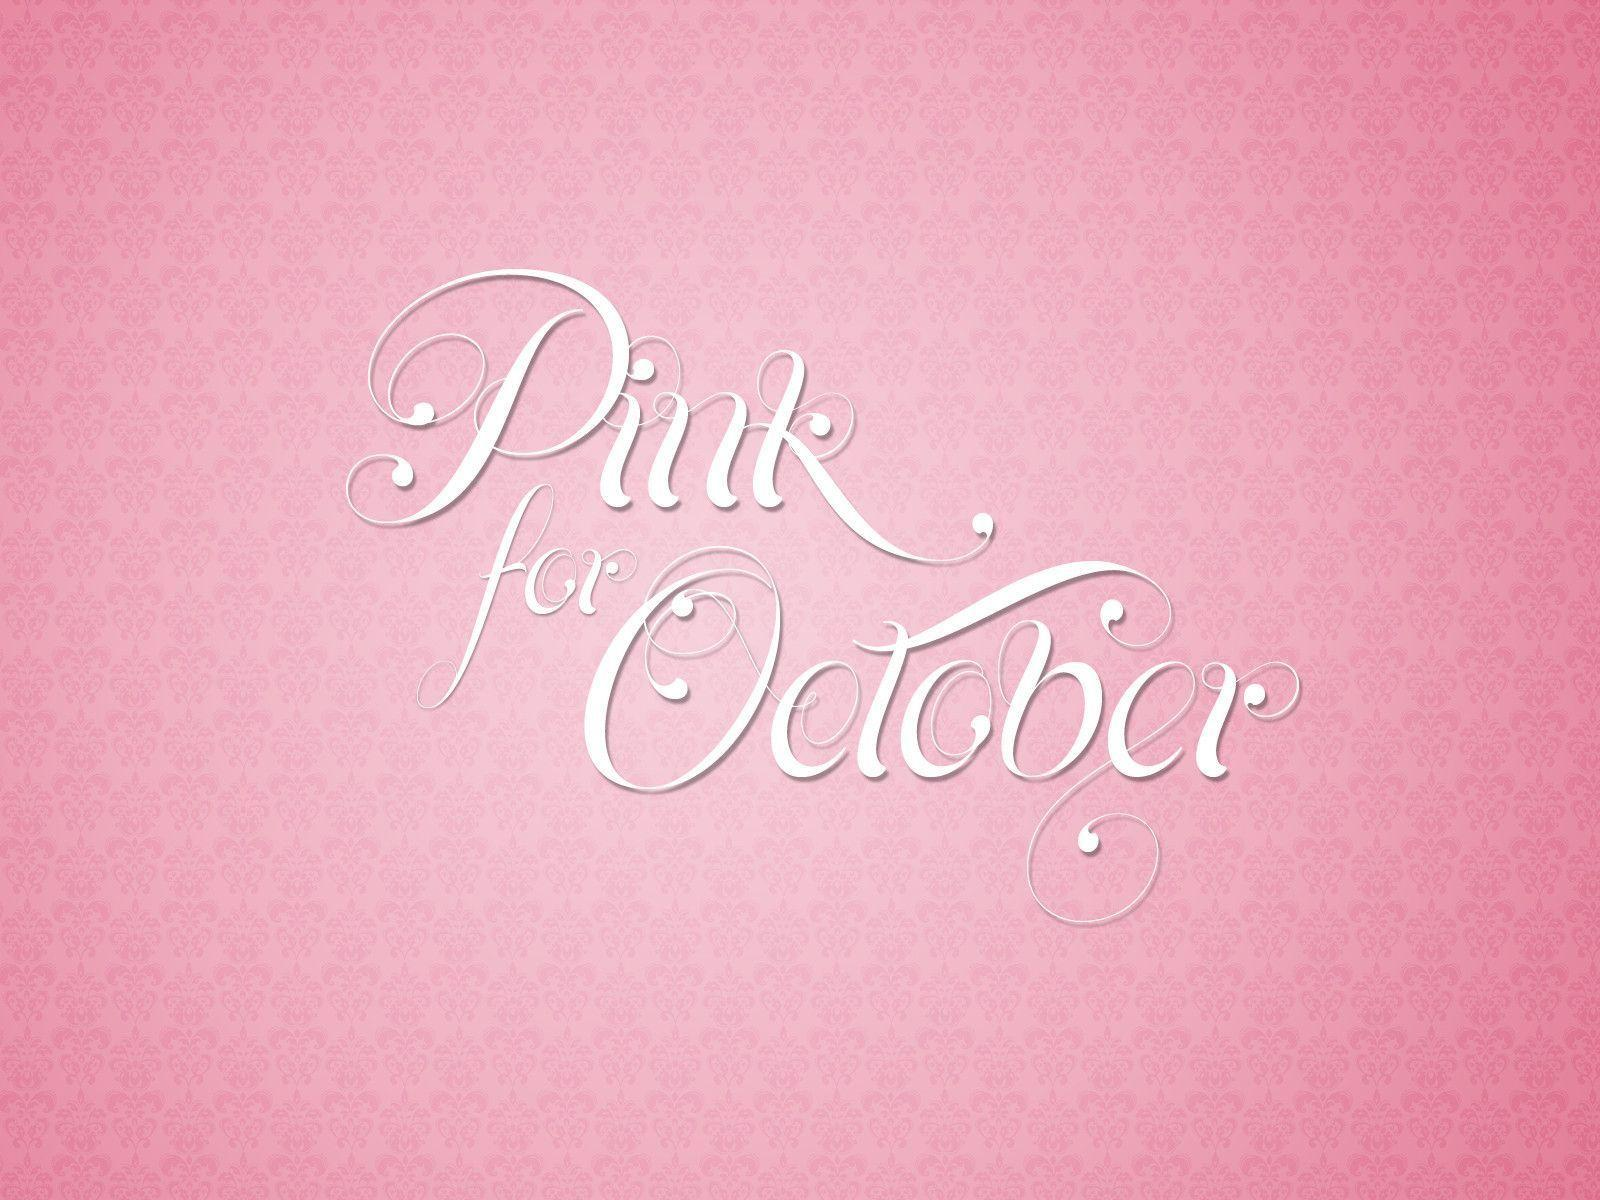 Breast Cancer Awareness Backgrounds 2013